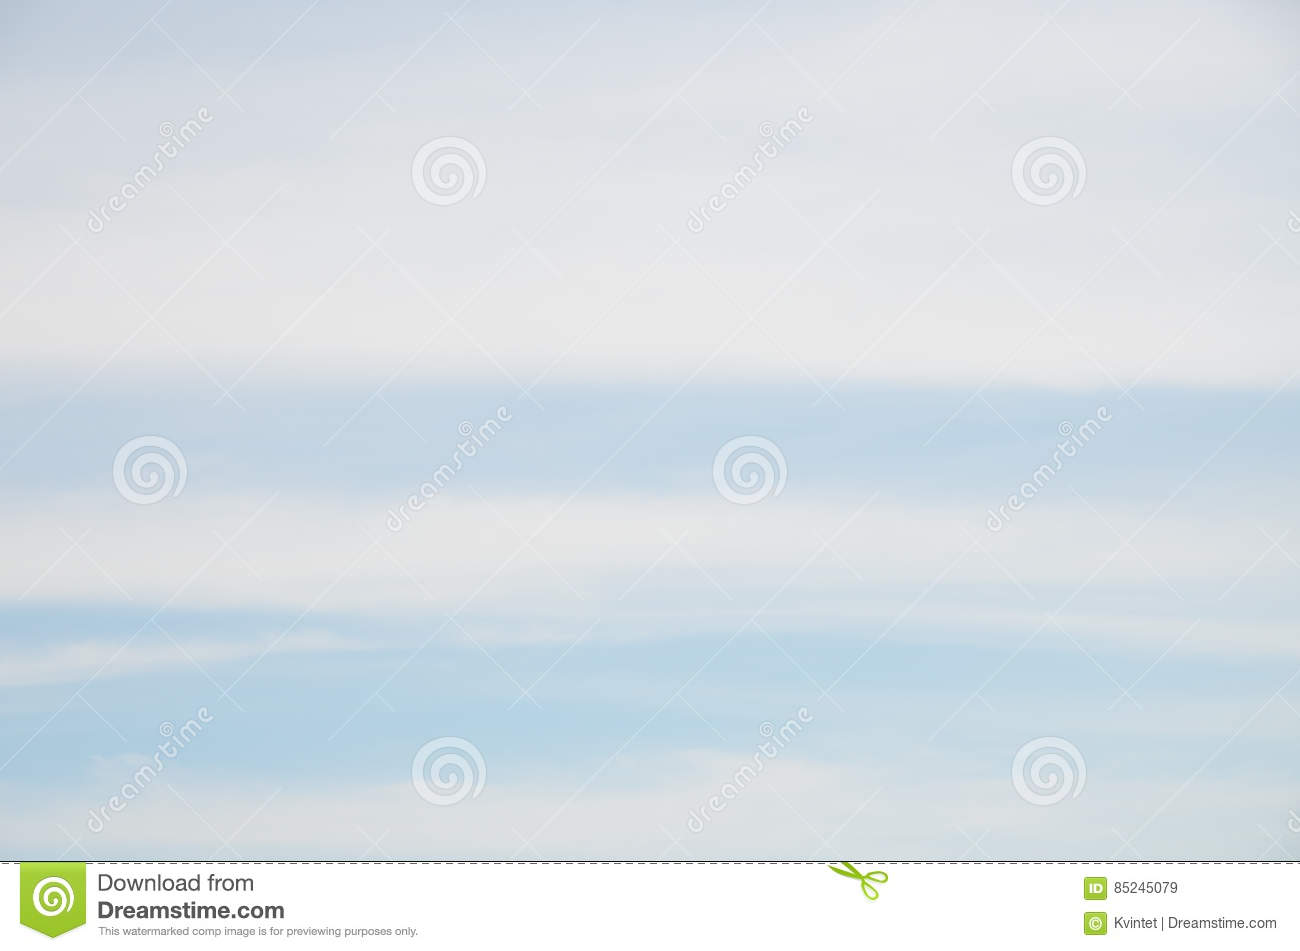 Abstract background of wide stripes white clouds on blue sky